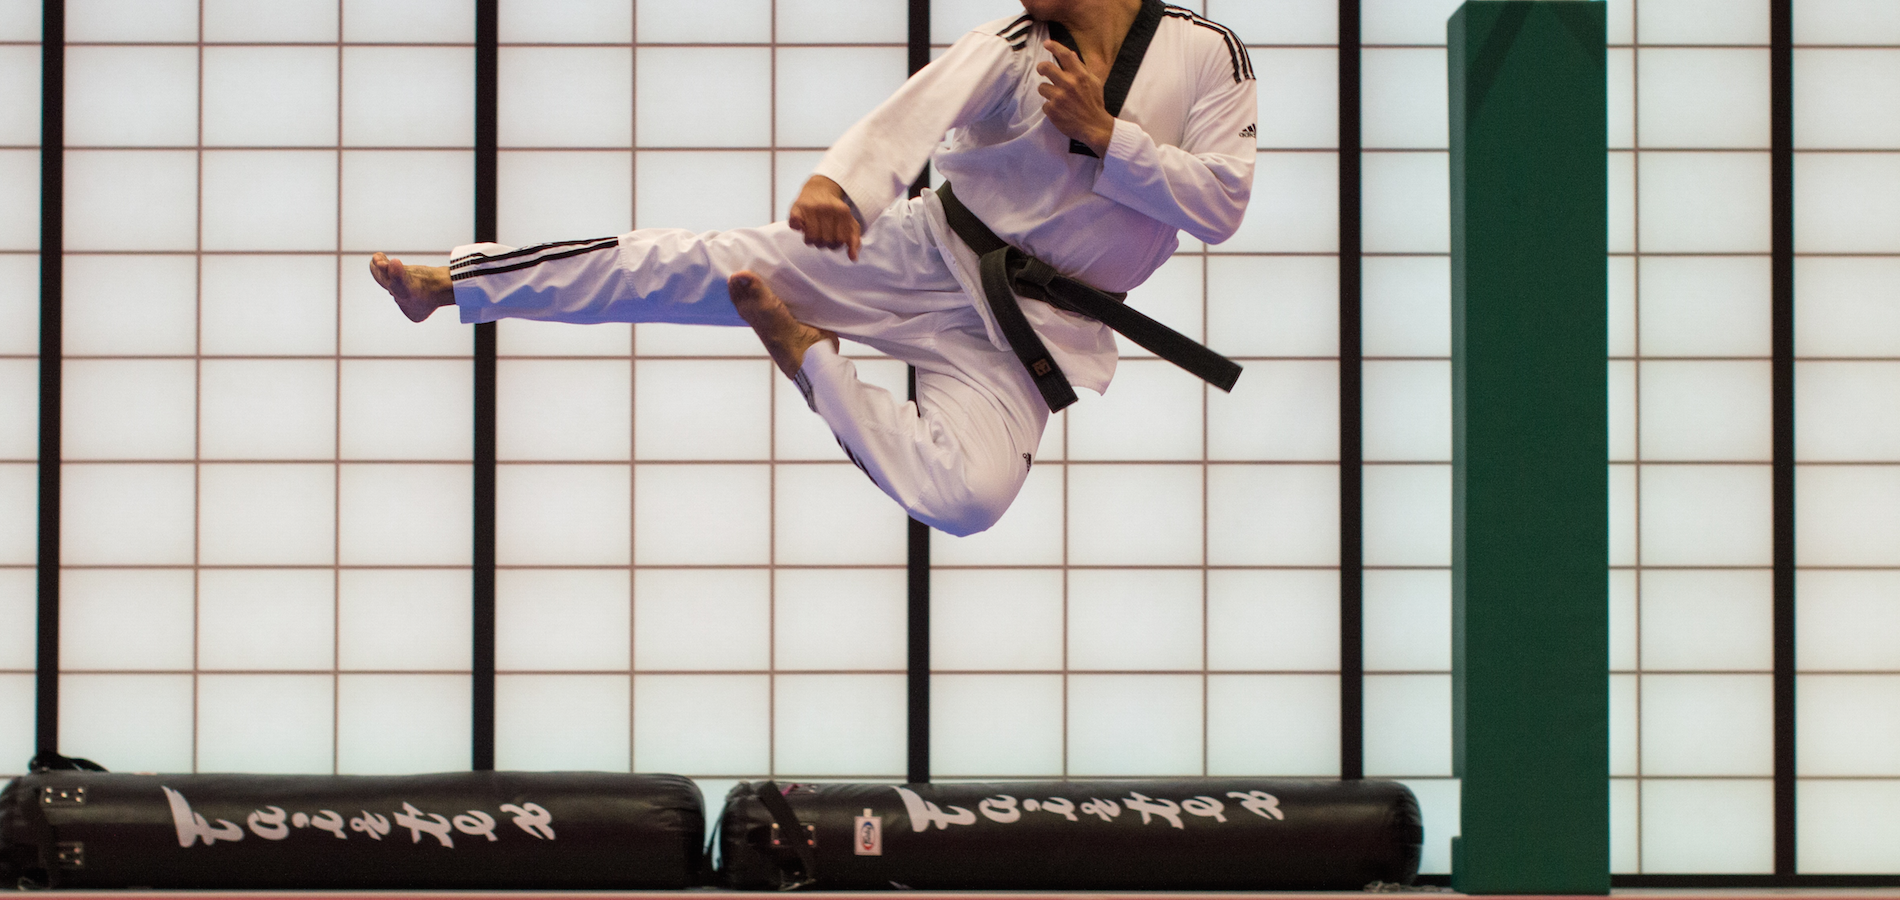 The Orthodox Jewish Taekwondo Master